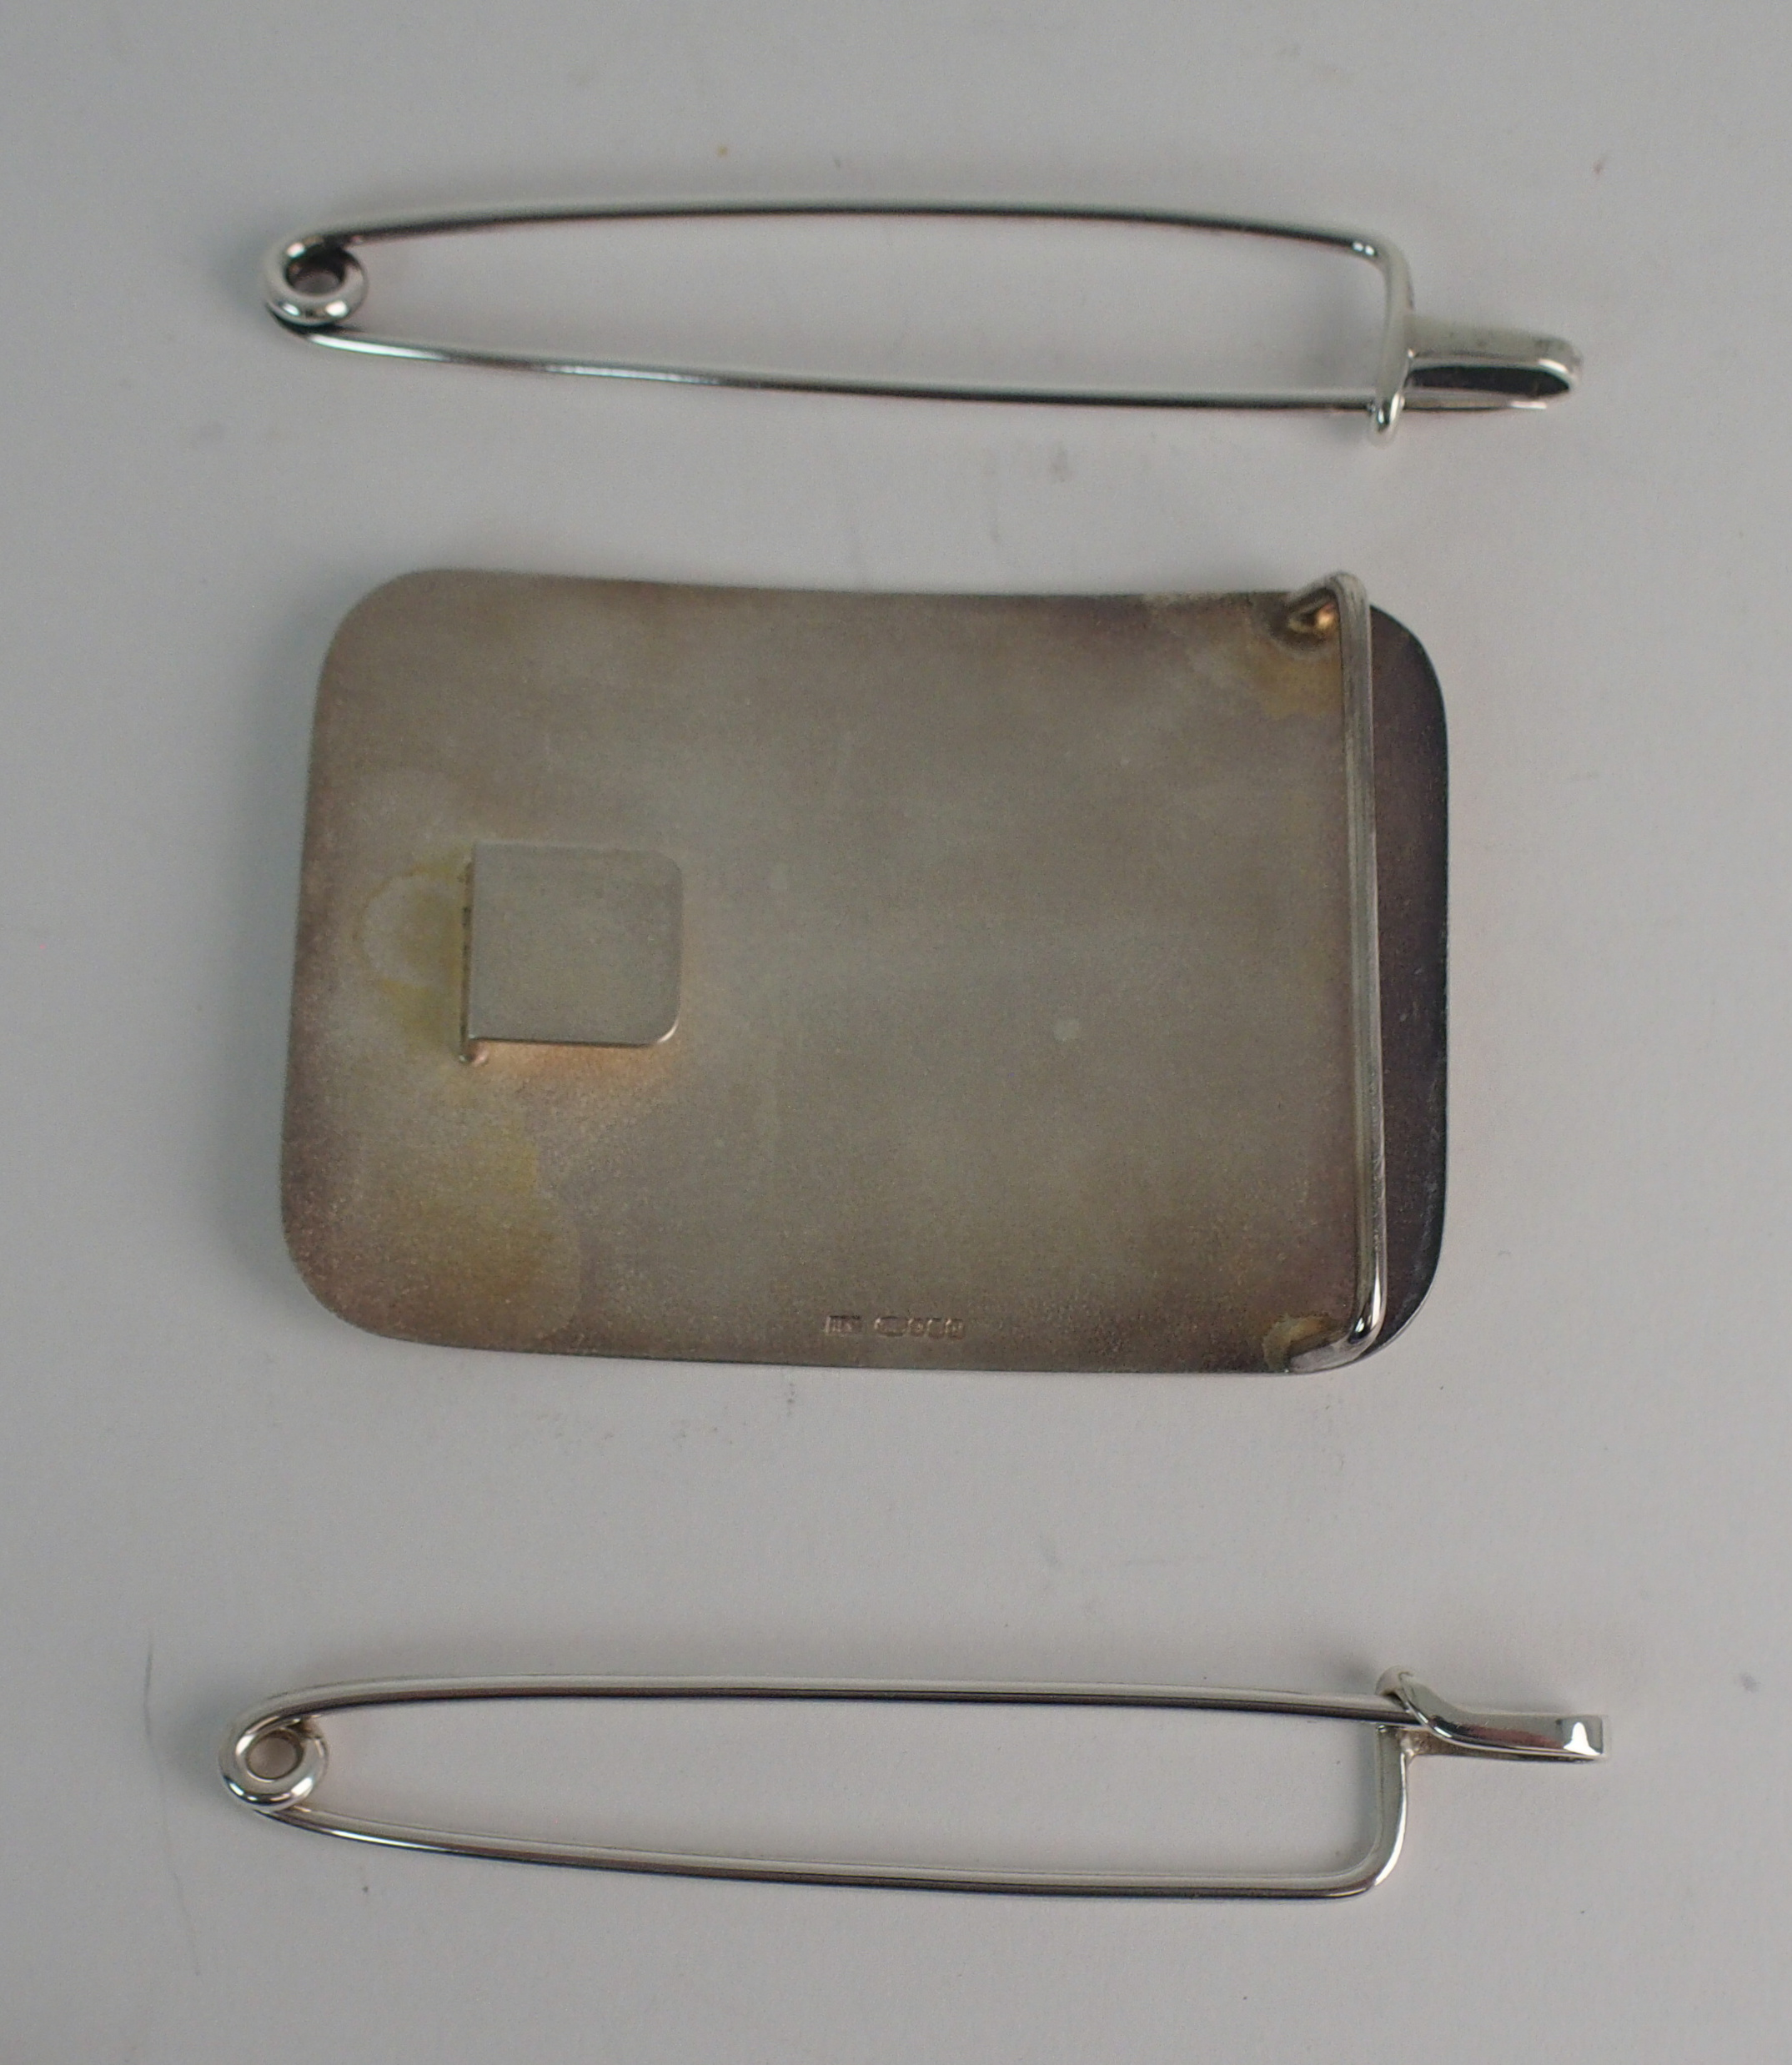 A HAMILTON & INCHES SILVER BELT BUCKLE and two Hamilton & Inches silver kilt pins (3) Condition - Image 2 of 3